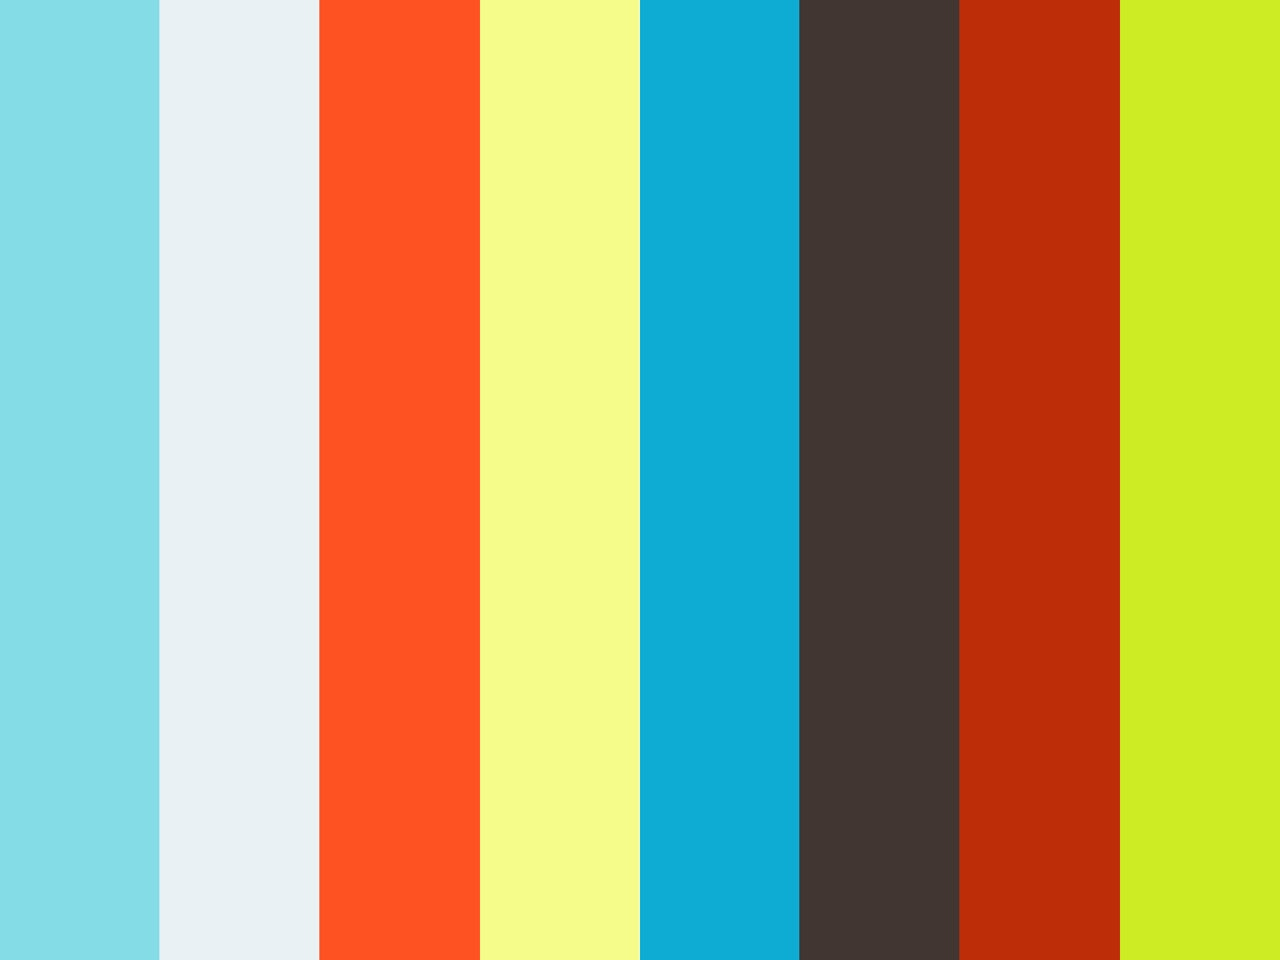 HubSpot Transform Data: Capitalize Contacts' first and last name